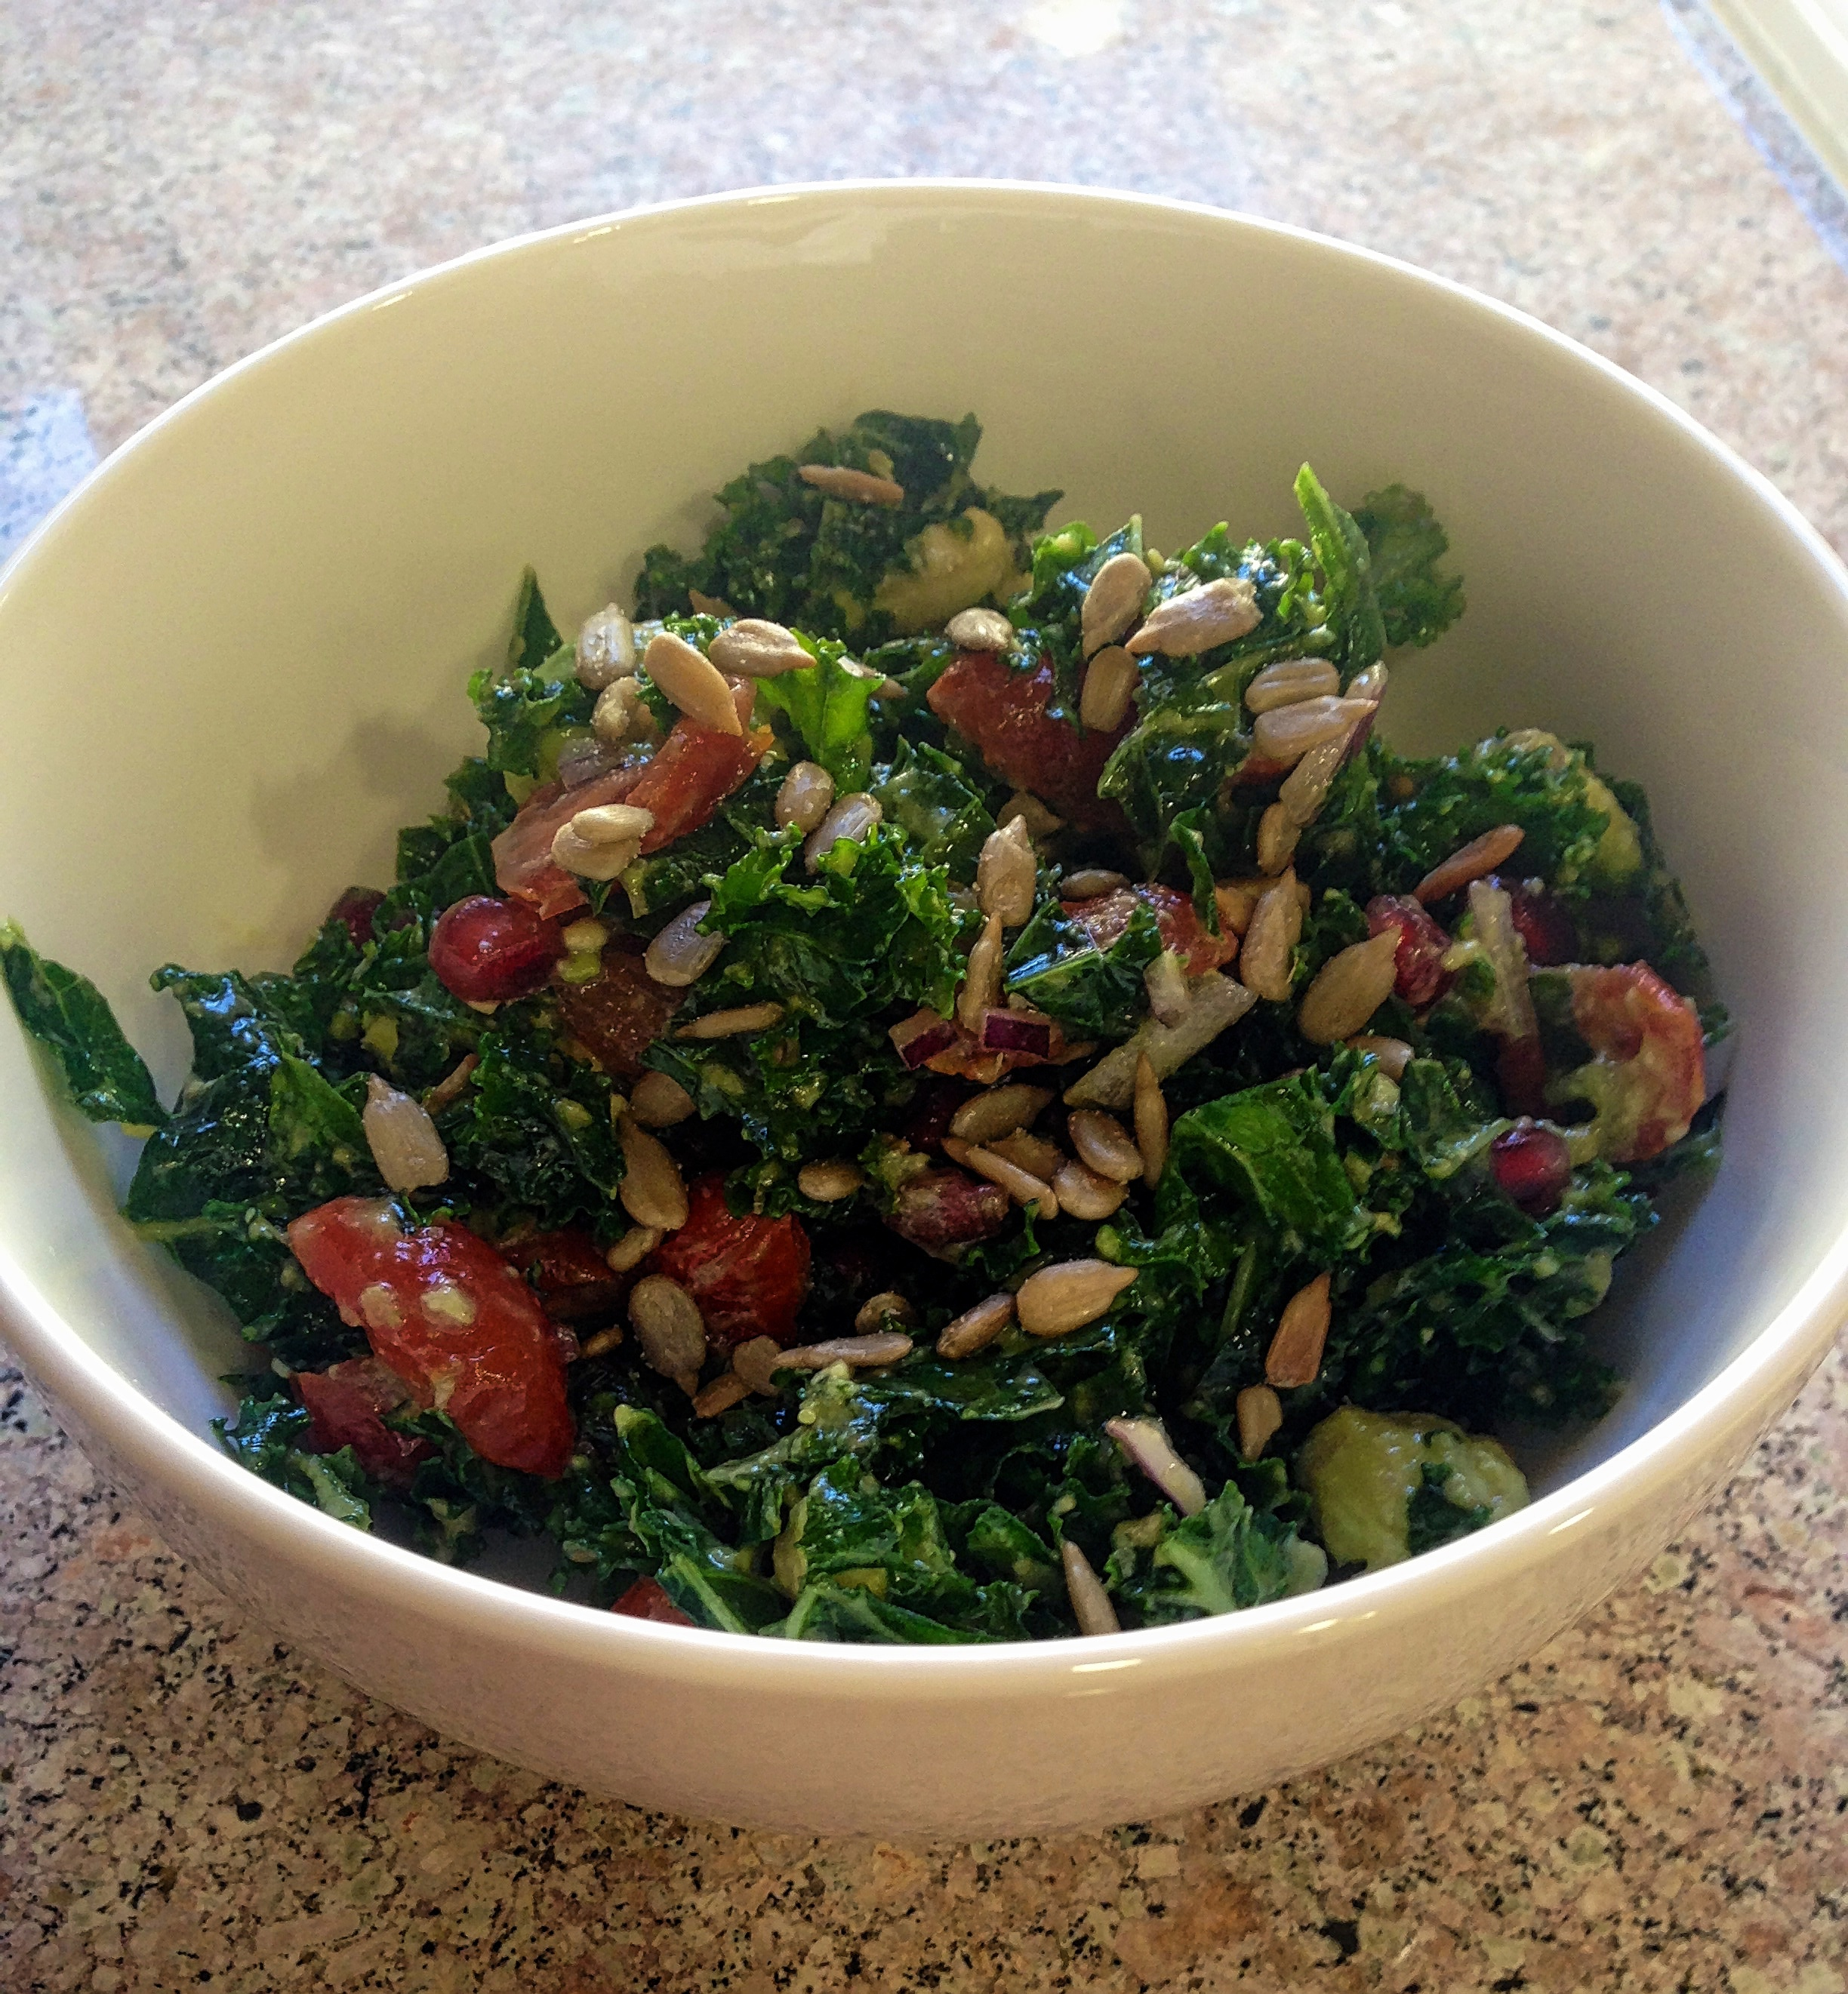 Kale Salad with Cherry Tomatoes and Avocados